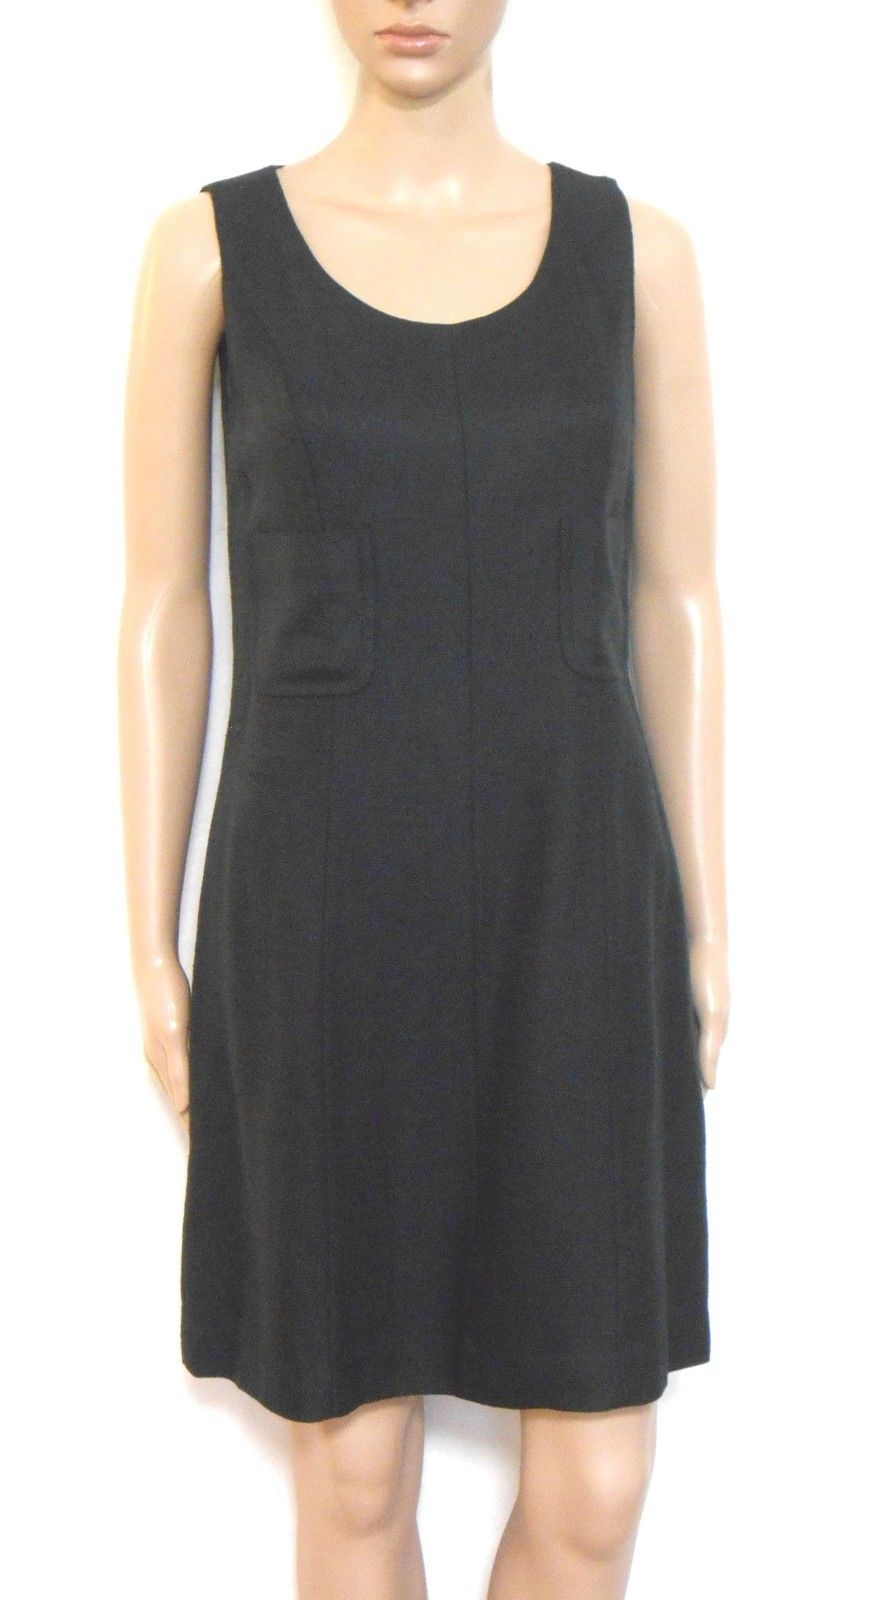 Marilyn Anslem black Hobbs dress, classy smart, sz. 10, for all seasons